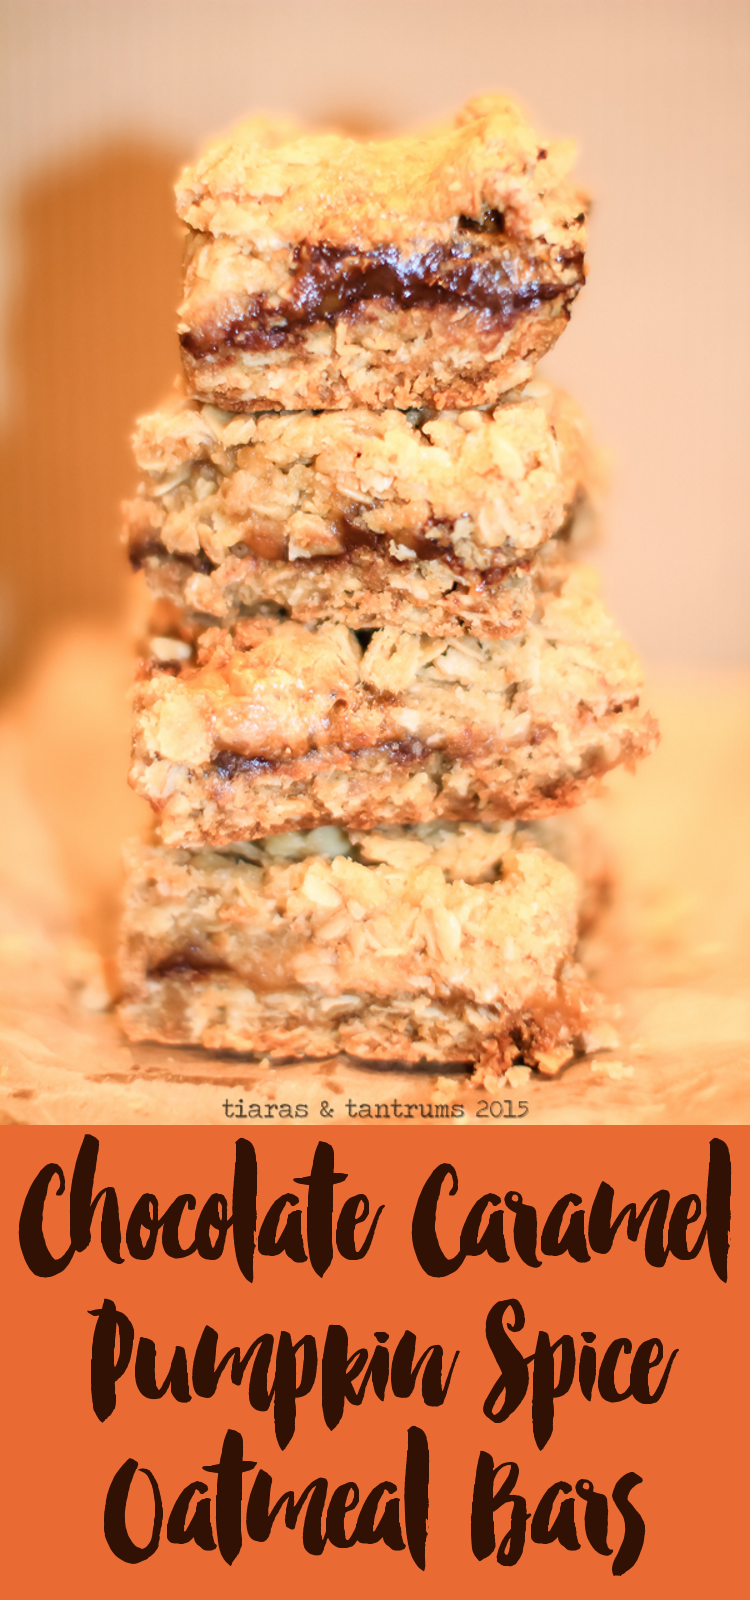 Chocolate Caramel Pumpkin Spice Oatmeal Bars #SweetenTheSeason